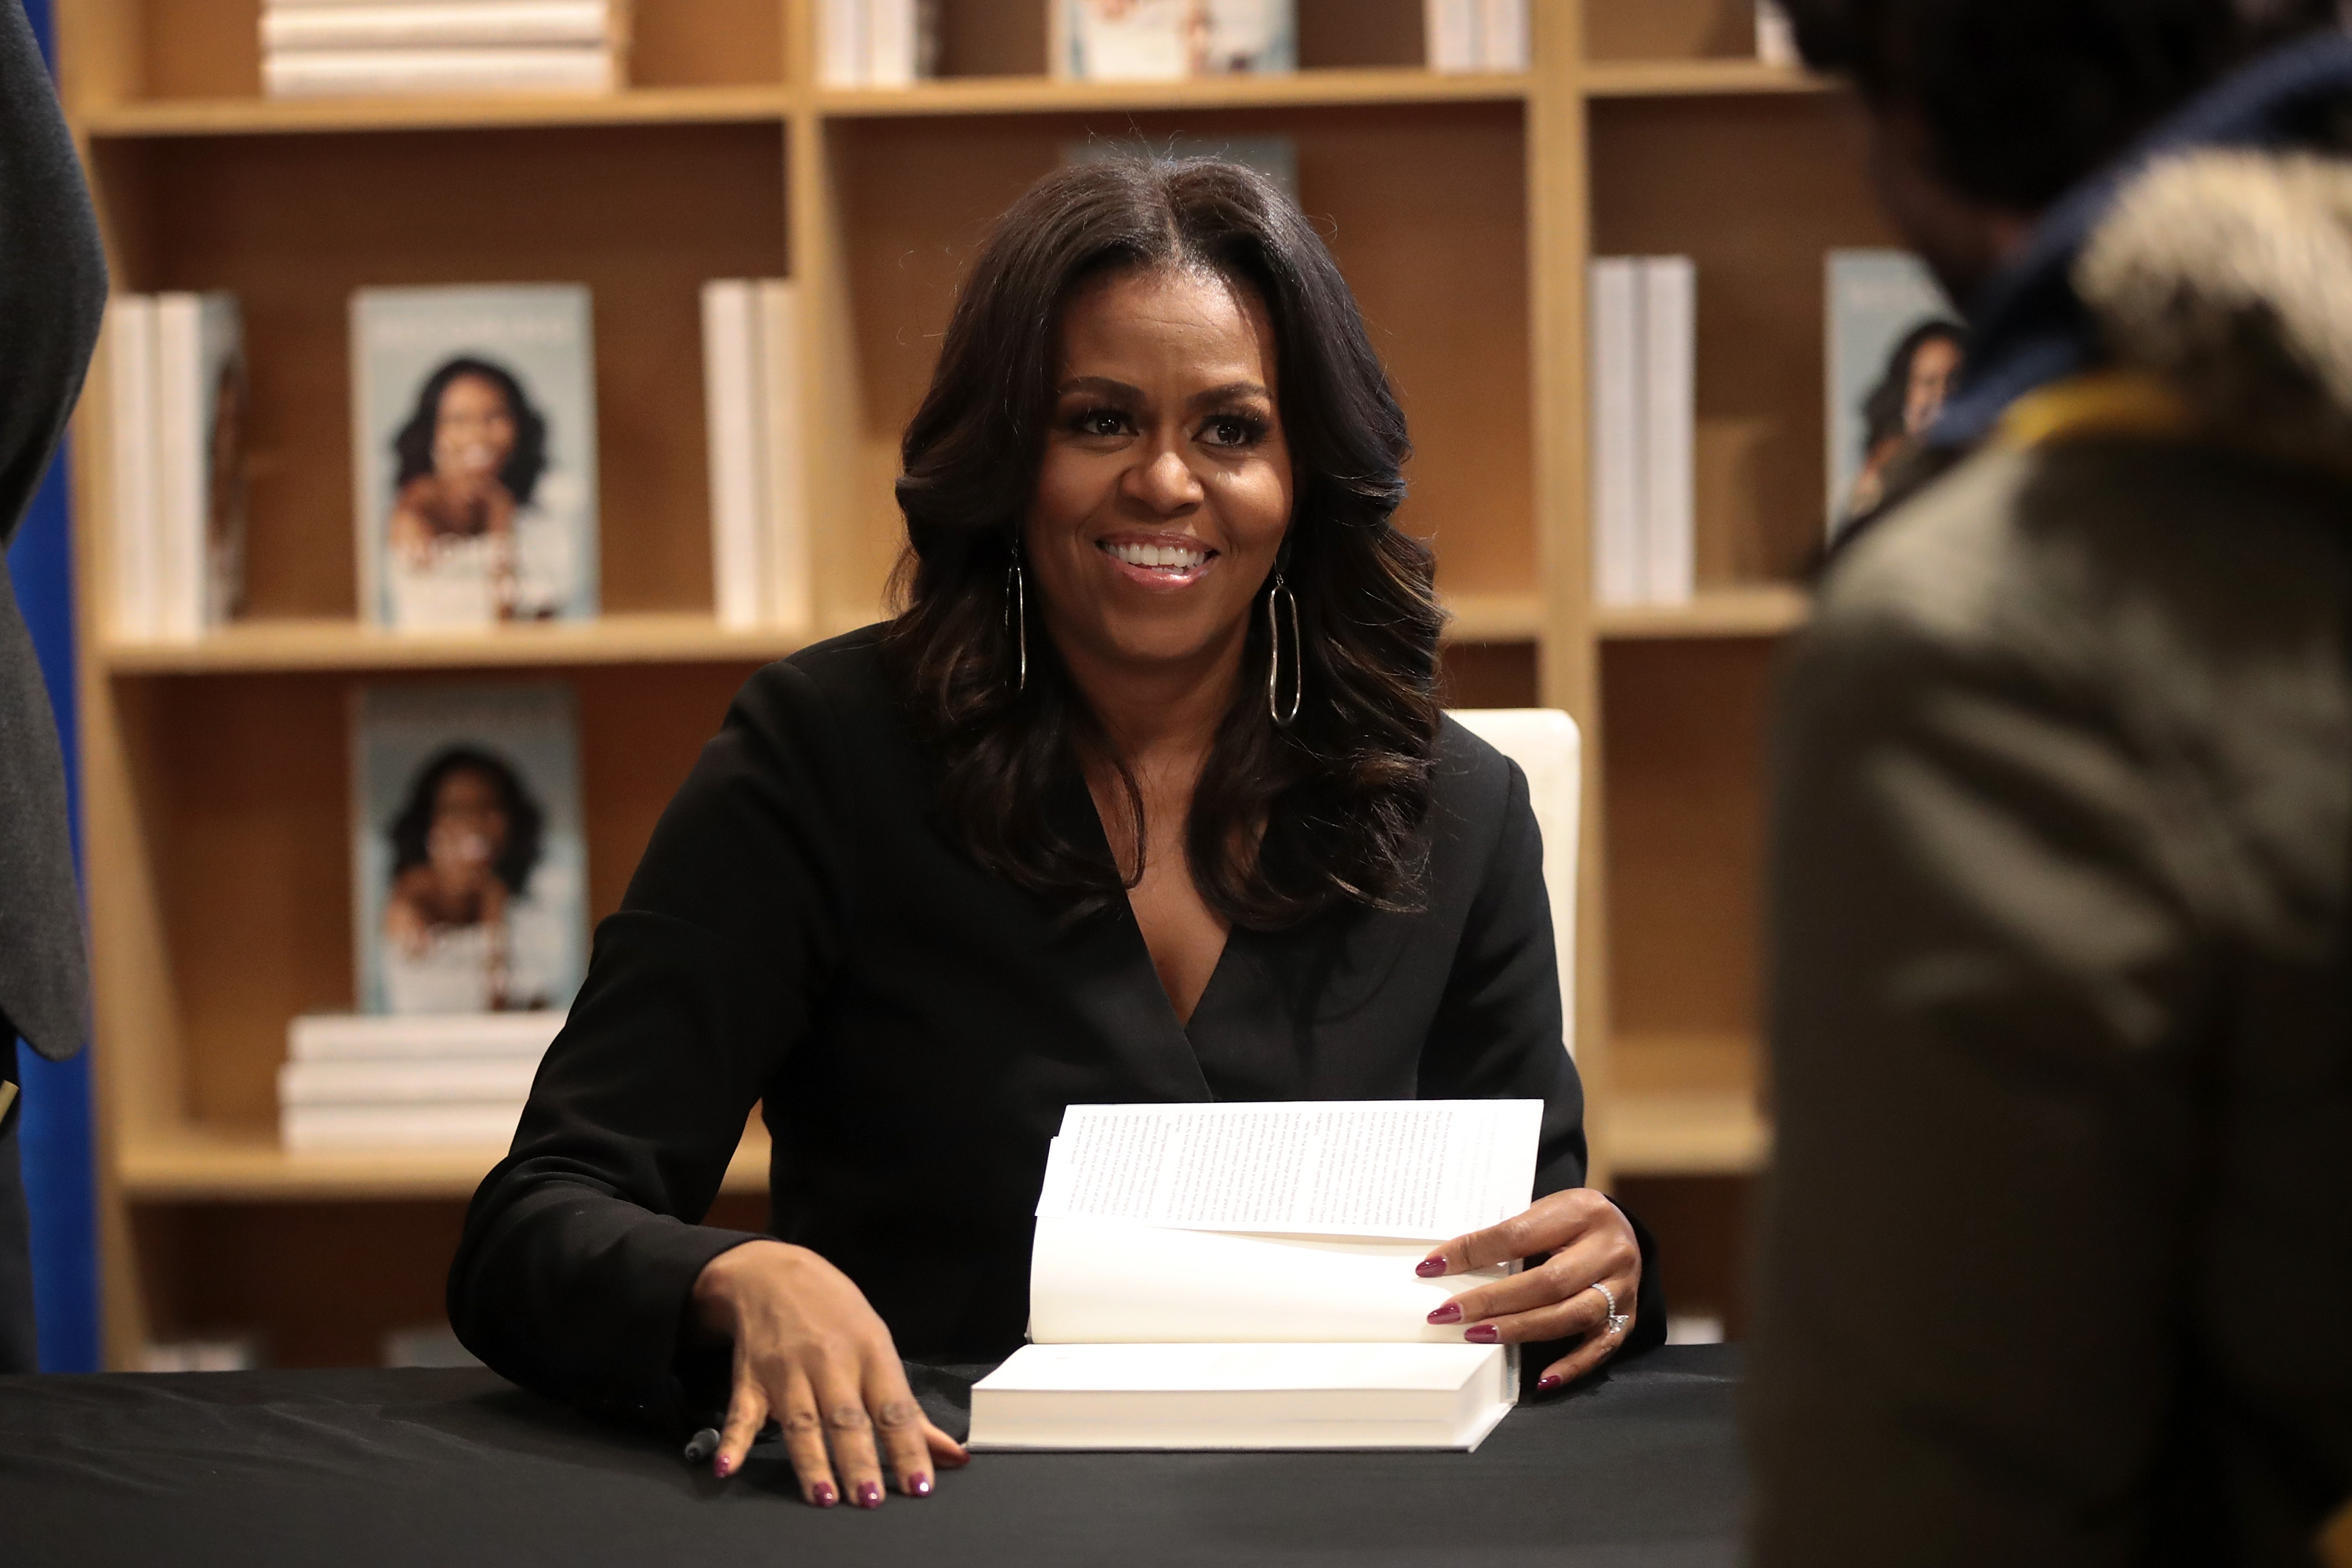 Where the Crawdads Sing and Michelle Obama's Becoming Top Amazon's Most-Sold List